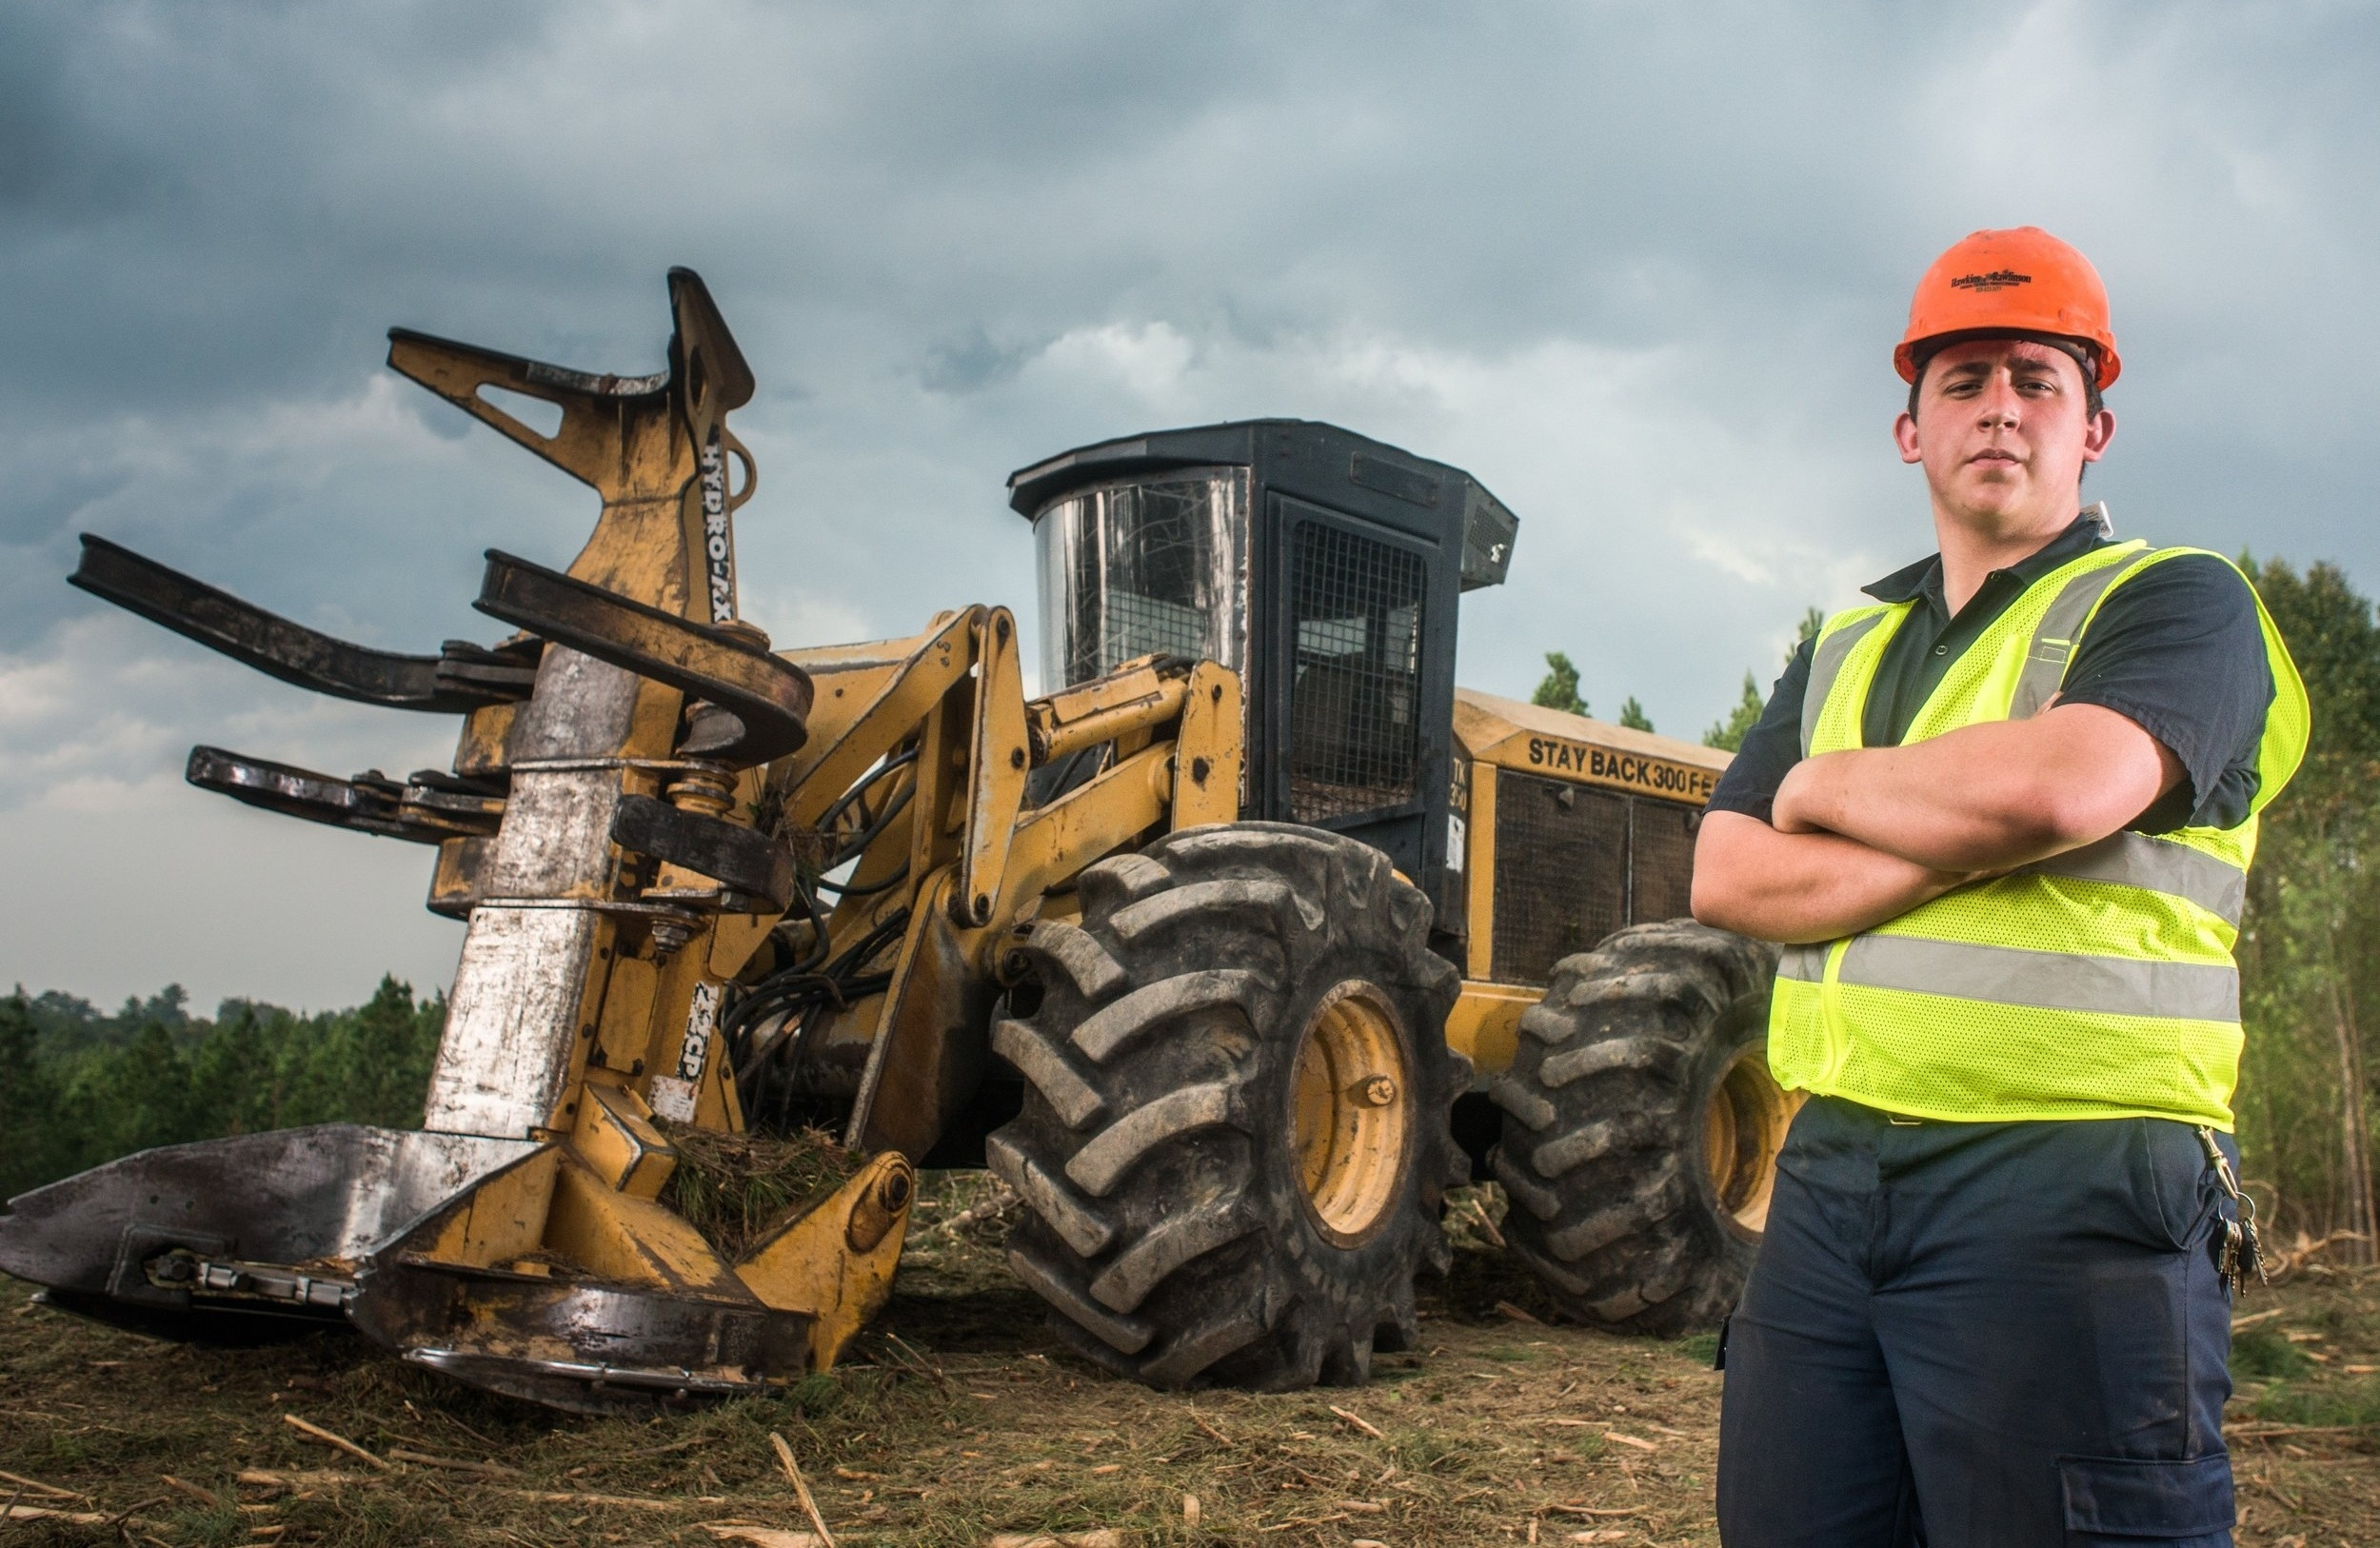 logging equipment operator - Heavy equipment operators in the logging industry control machines like skidders, feller bunchers, excavators, dozers and graders.